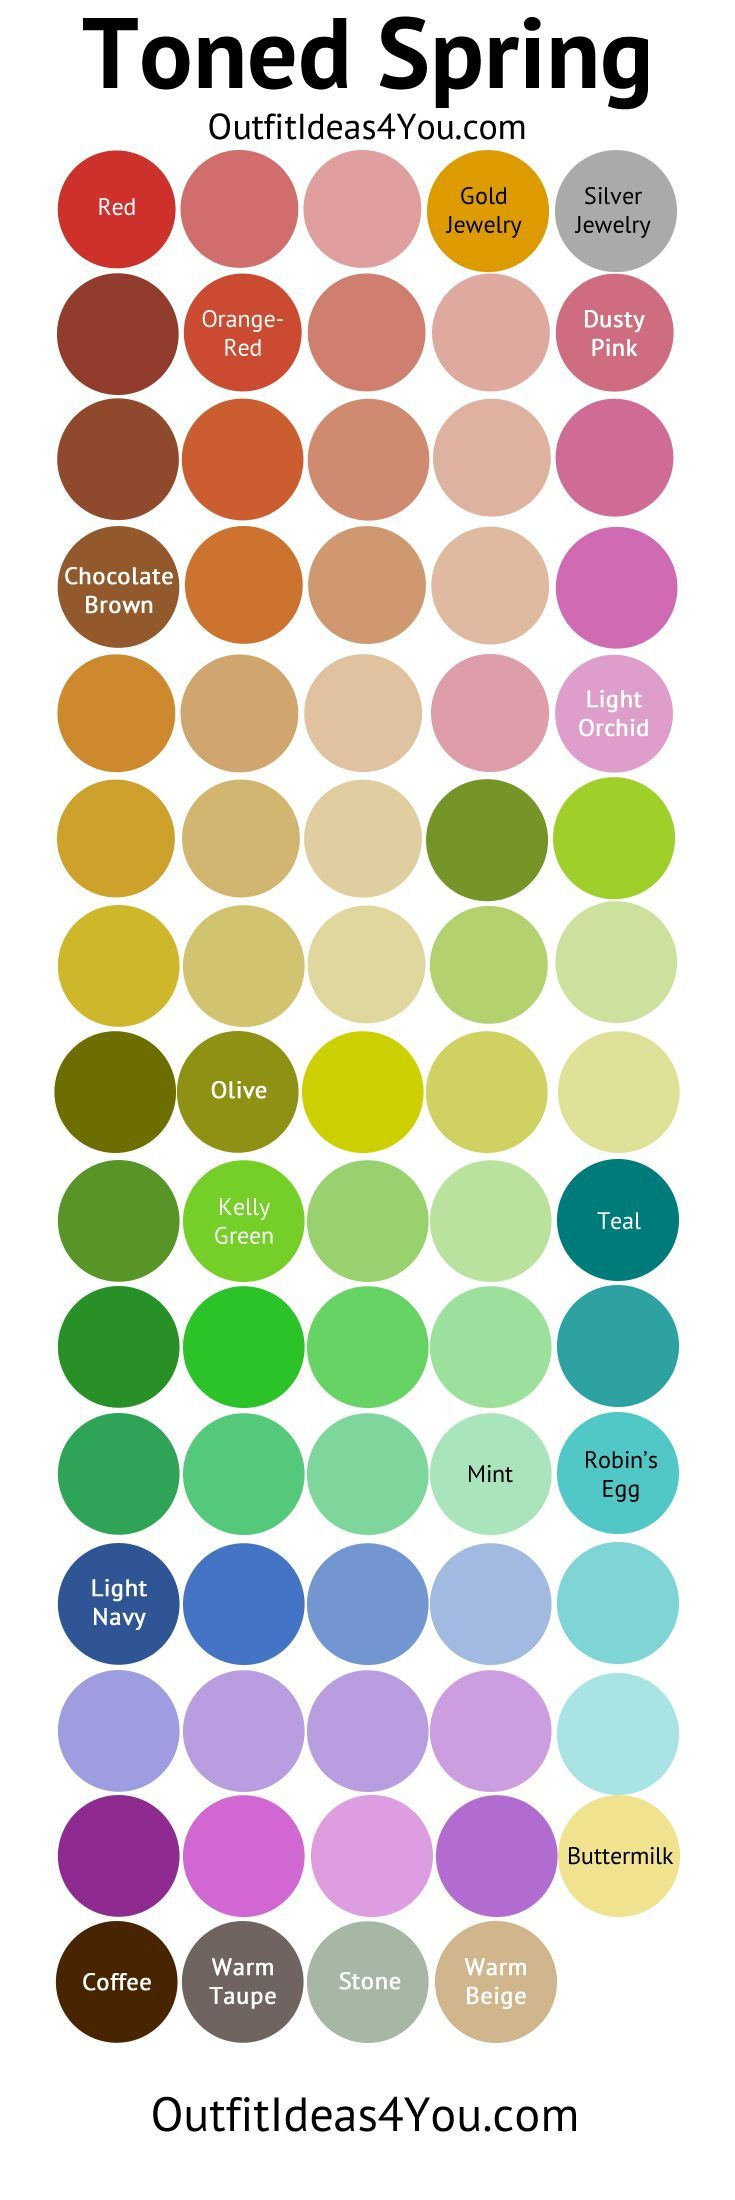 94 best Faber-Castell images on Pinterest | Color combinations ...